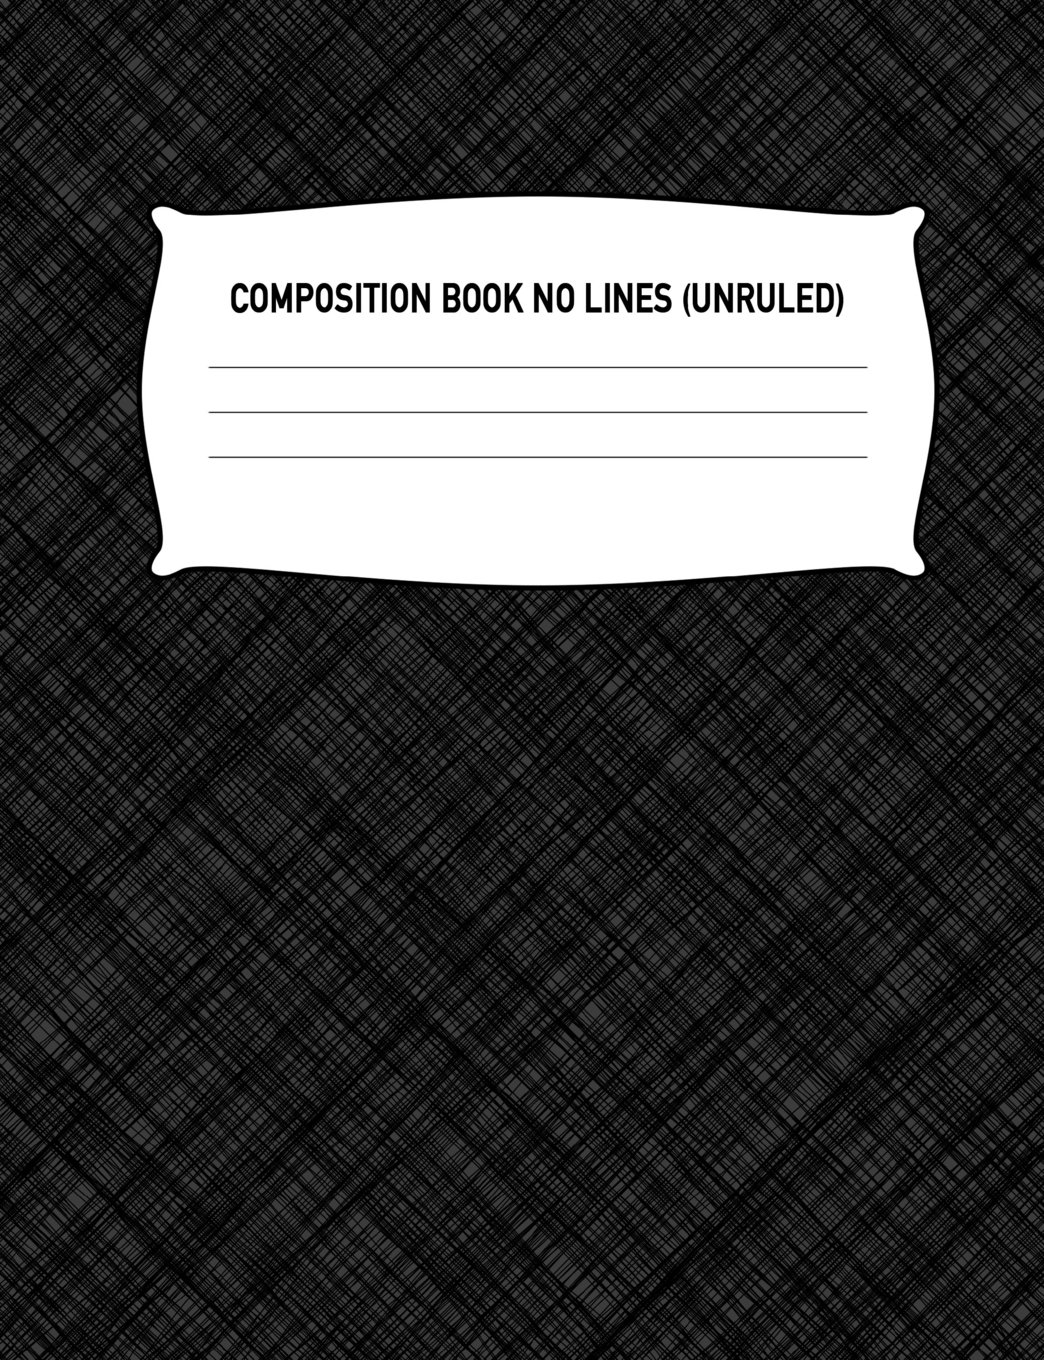 Composition Book No Lines (Unruled): Blank Sketch Pad Drawing Notebook: Black Pattern Sketchbook Notepad Diary Journal: High School, Middle School, ... 7.44 x 9.69 Paper 100 Pages, Birthday, Gift ePub fb2 book